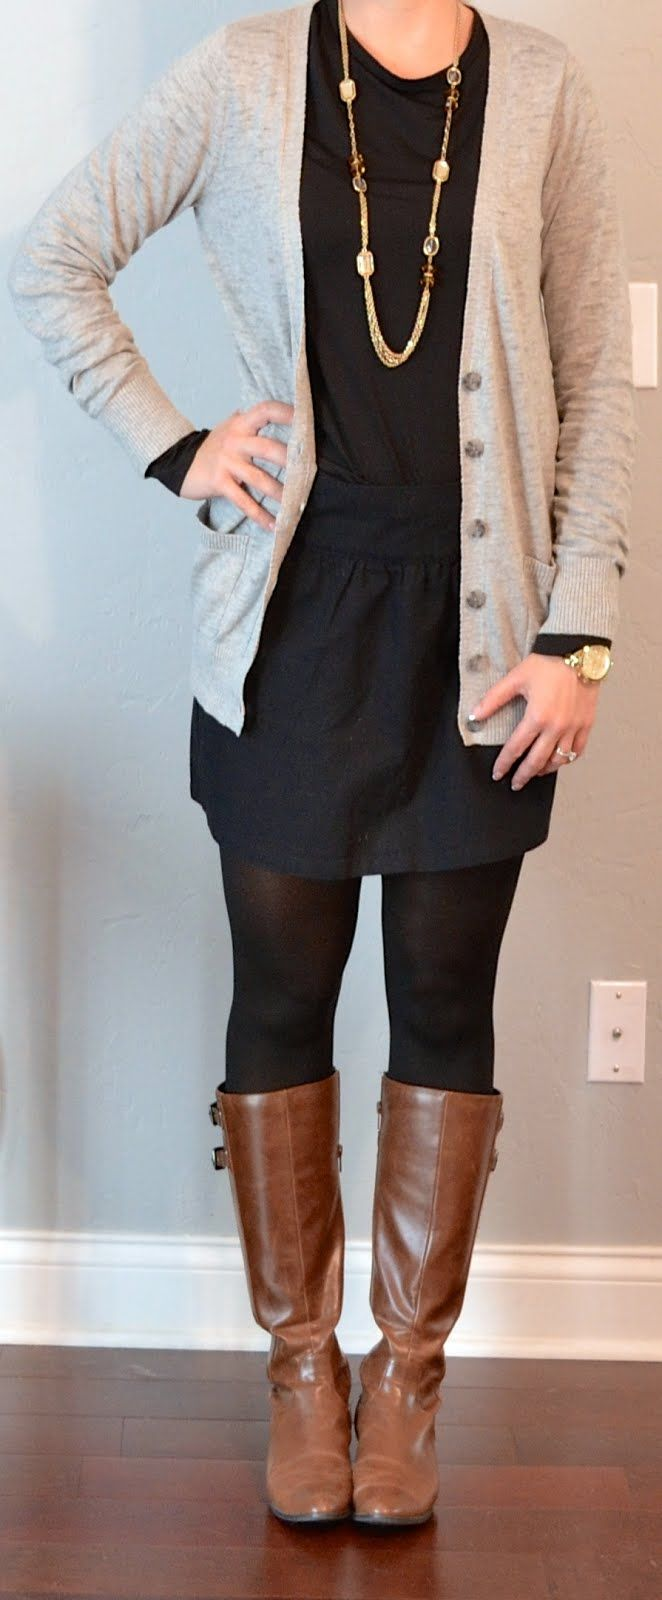 Long cardigan with dress and leggings and boots